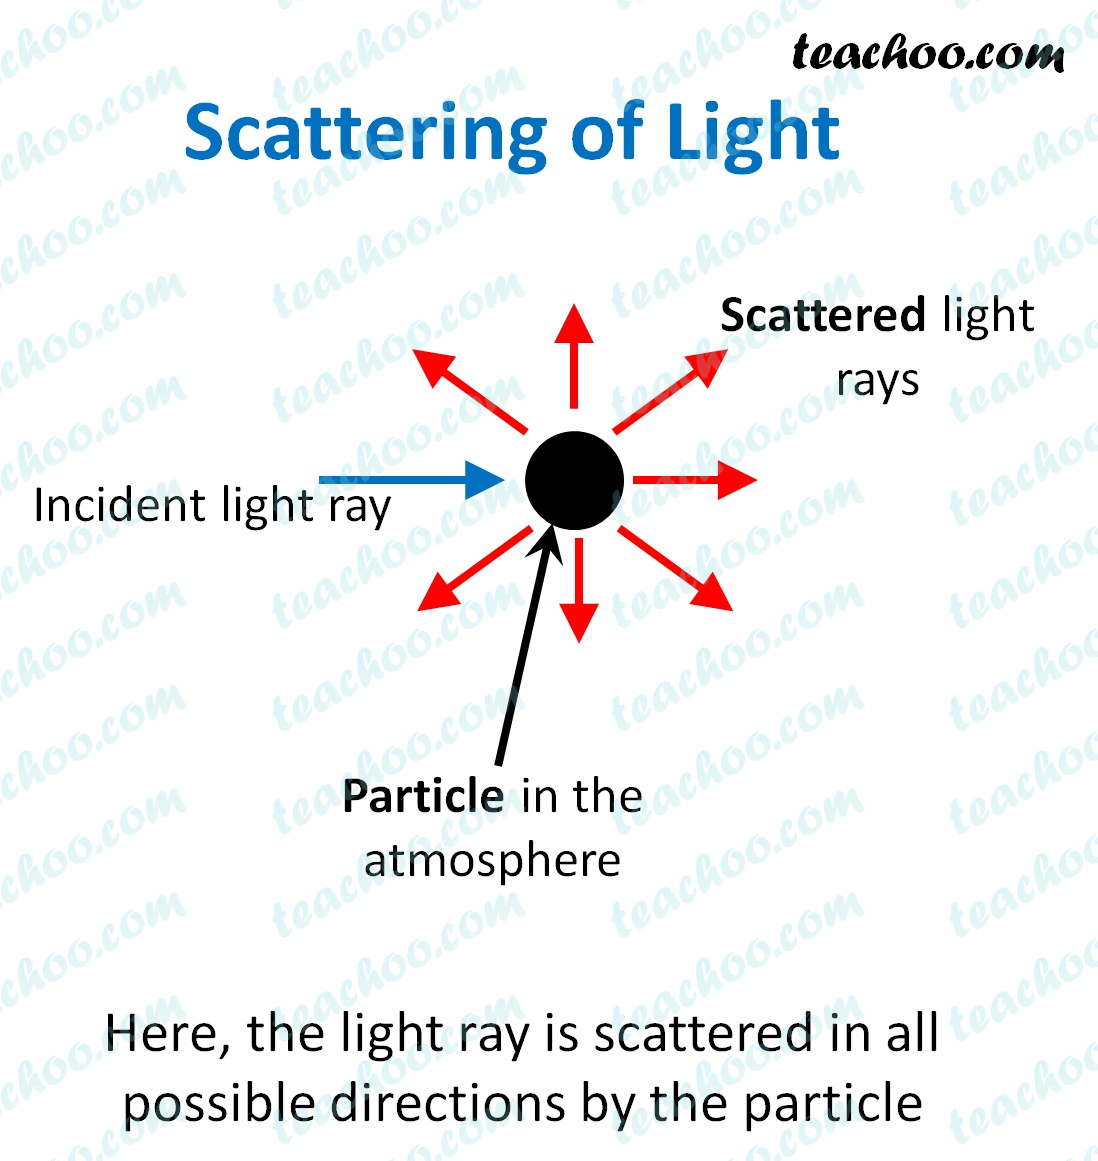 scattering-of-light-by-particle---teachoo.jpg